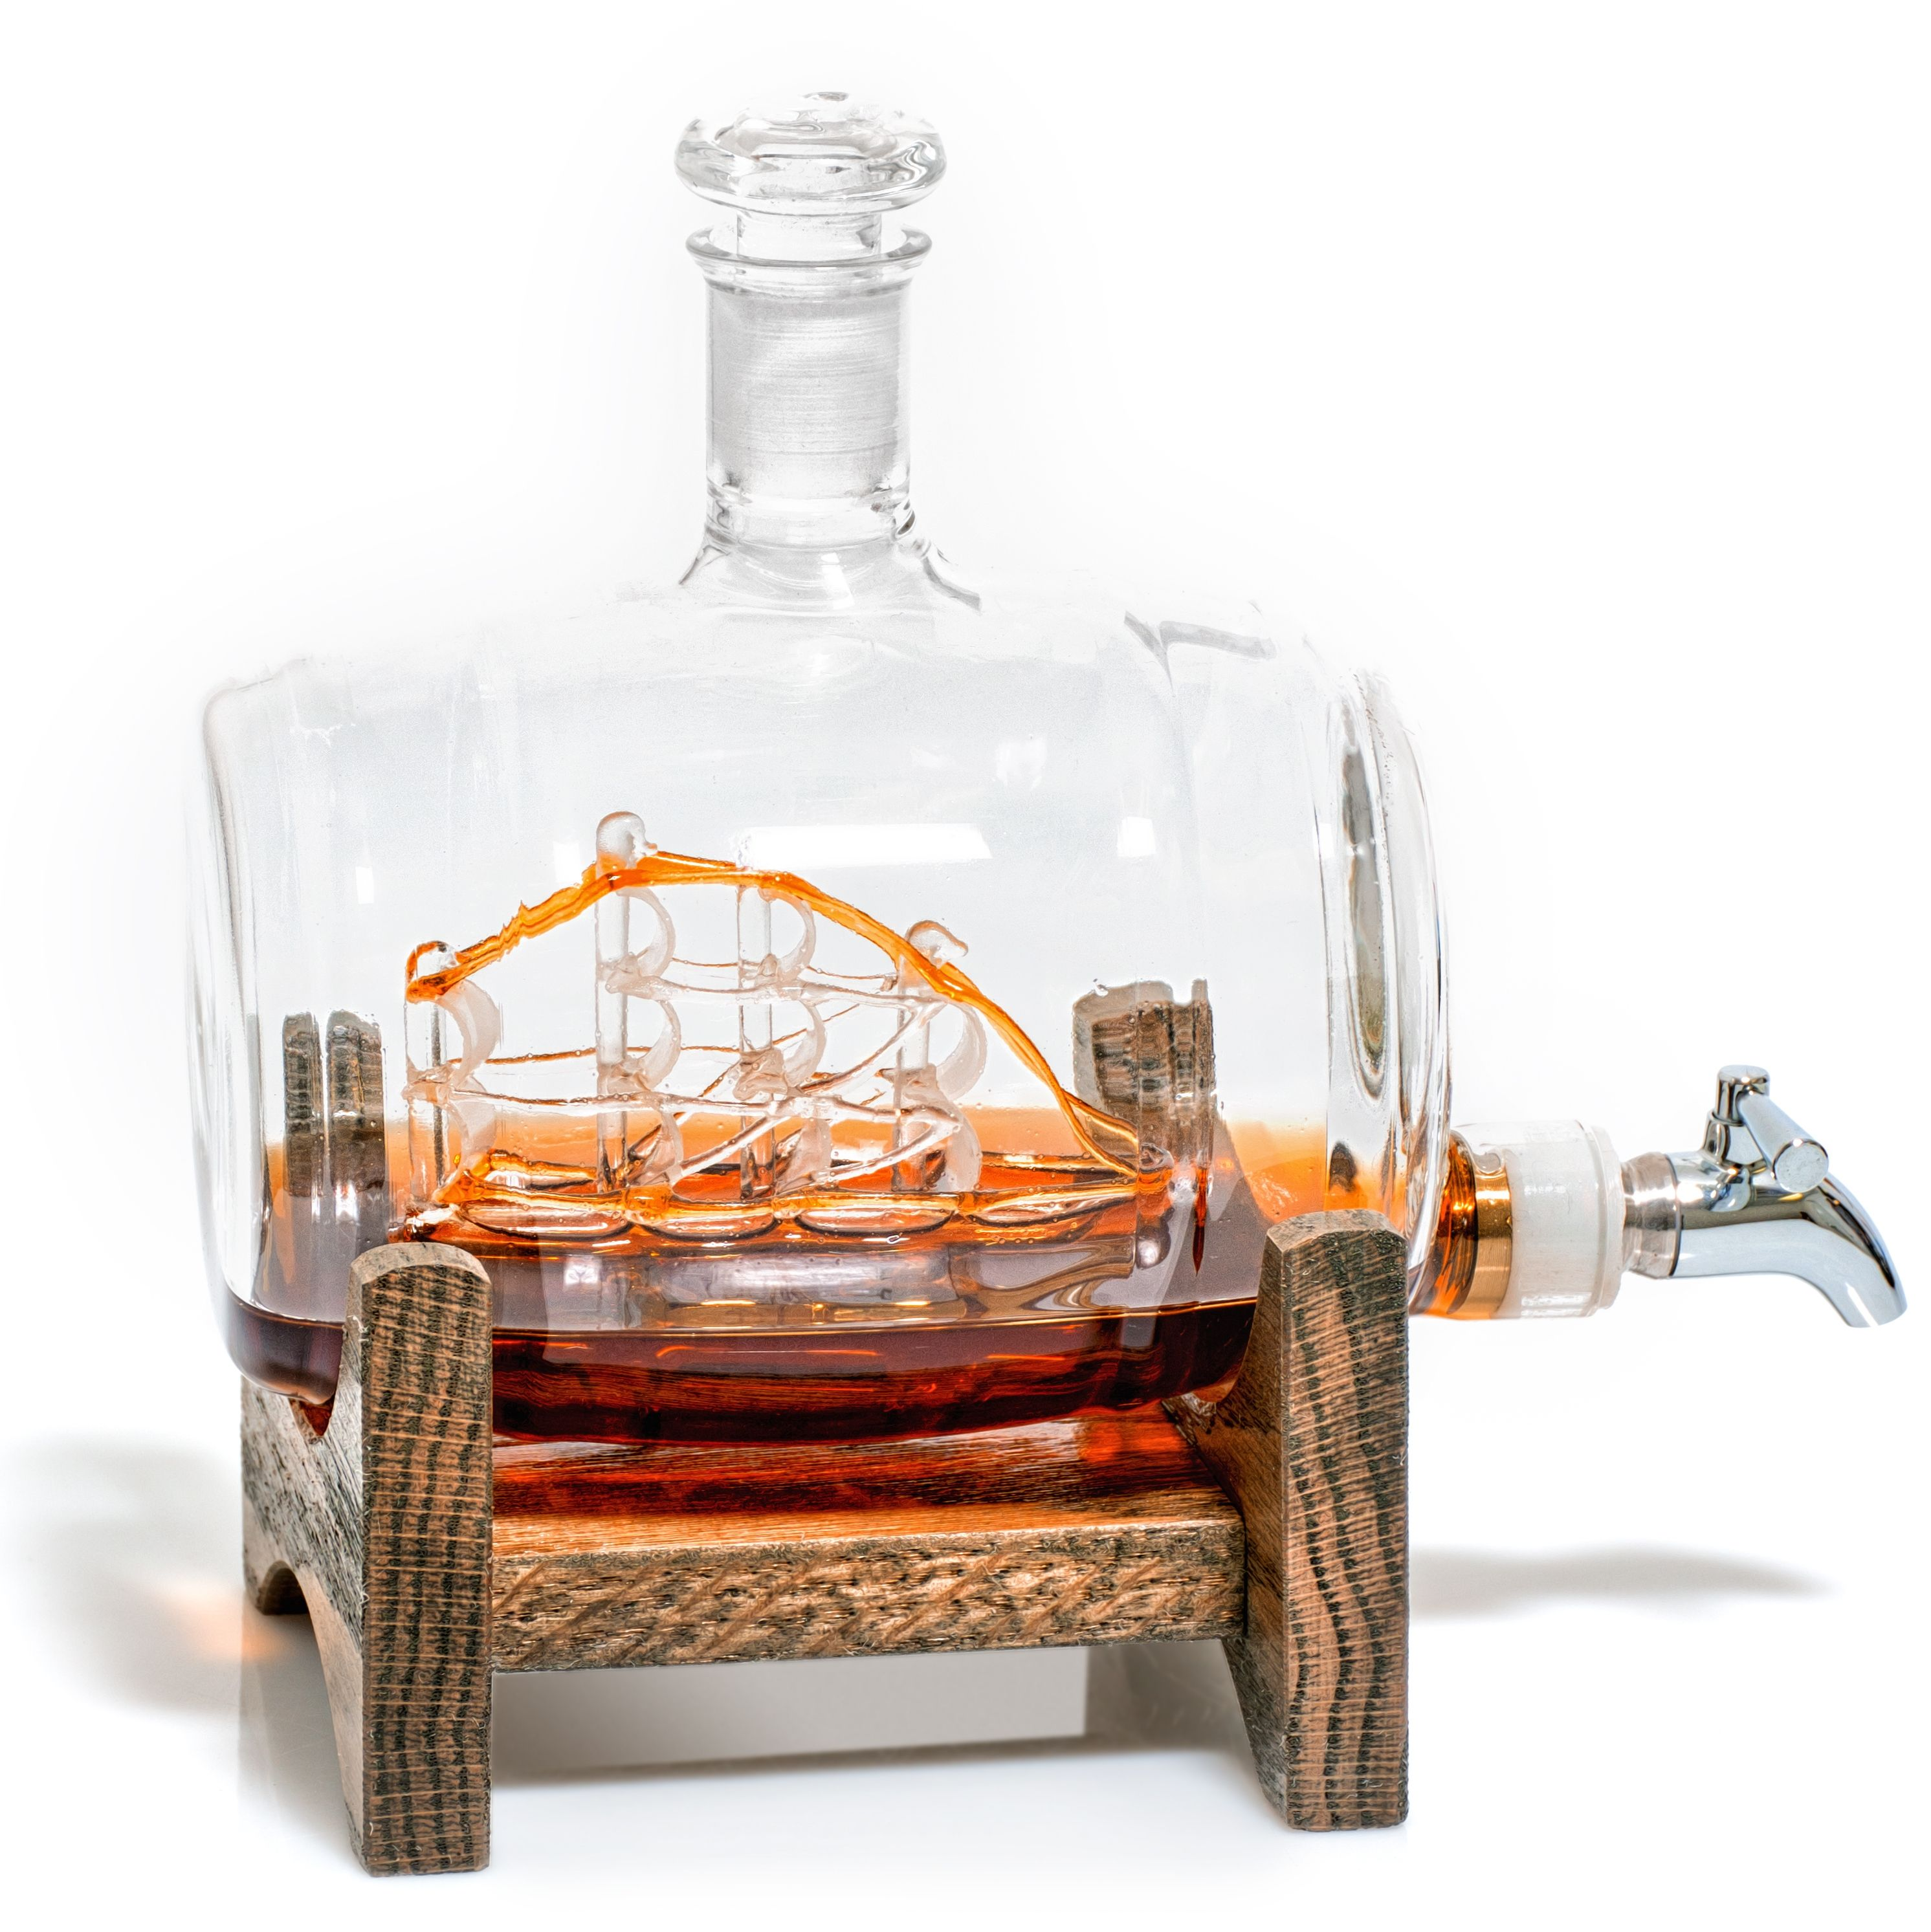 Barrel Shaped Liquor/Wine Decanter with Ship Inside